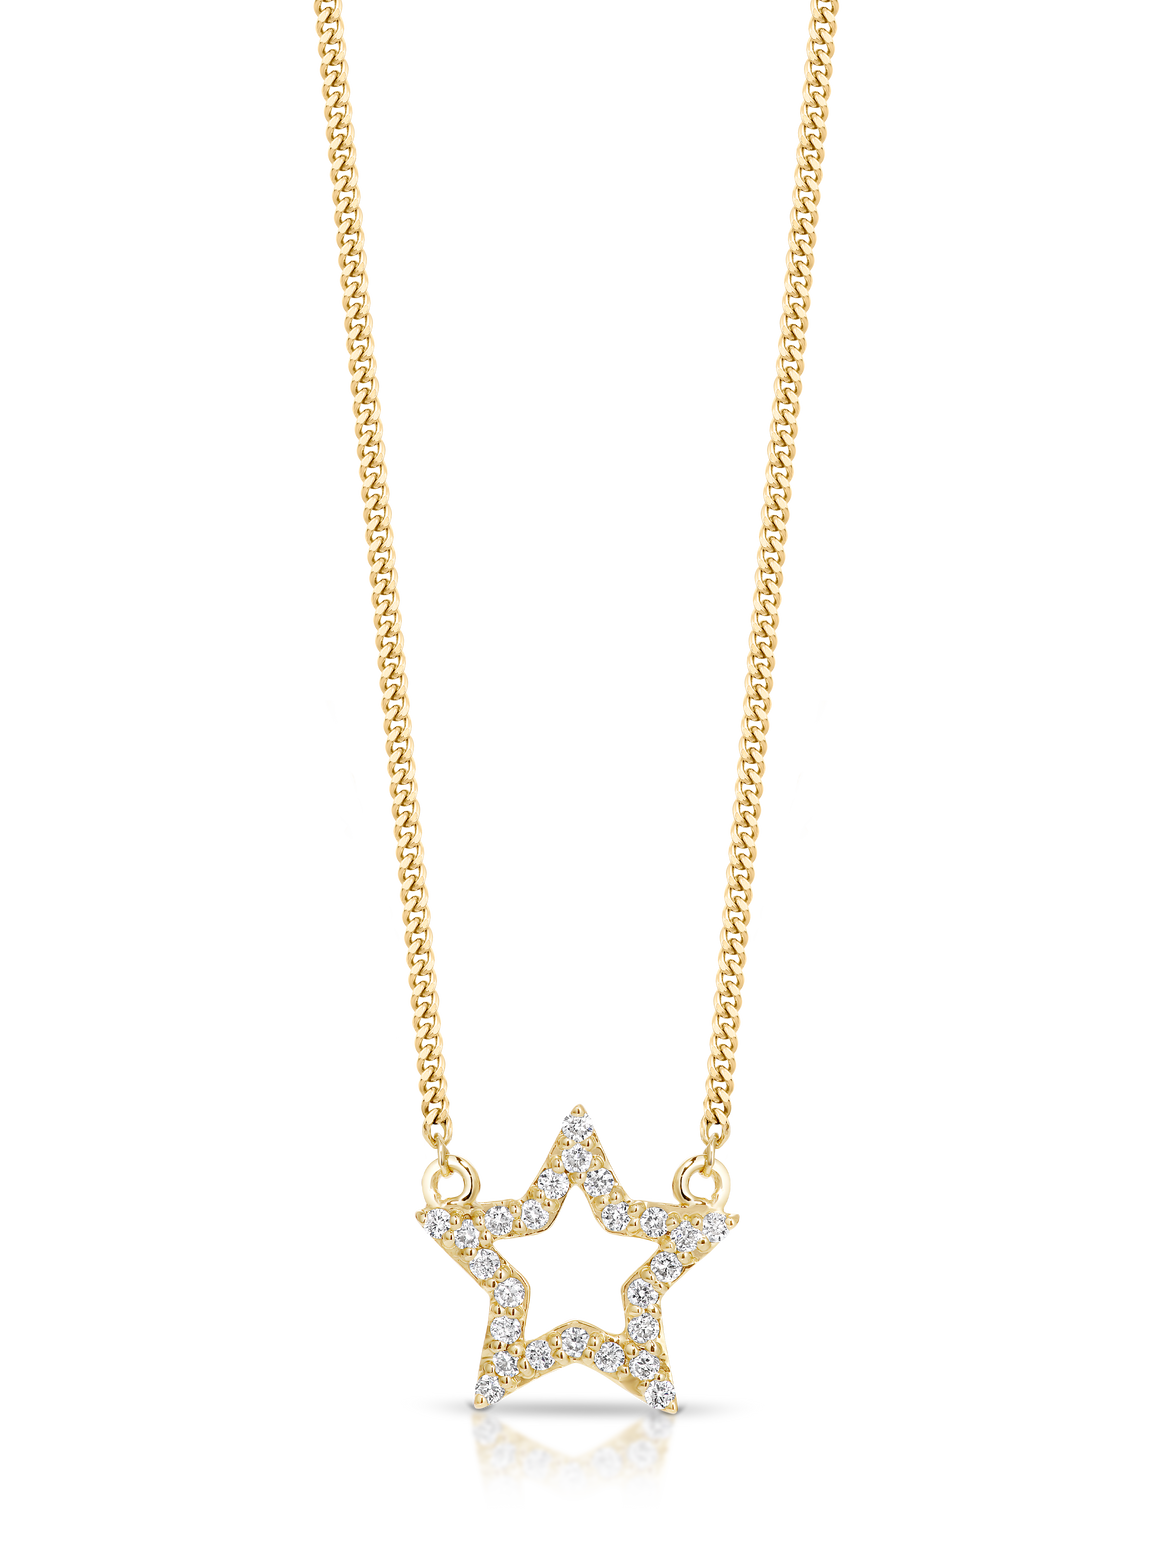 9ct Gold and Diamond 'Star' Necklace - Gemma Stone Jewellery